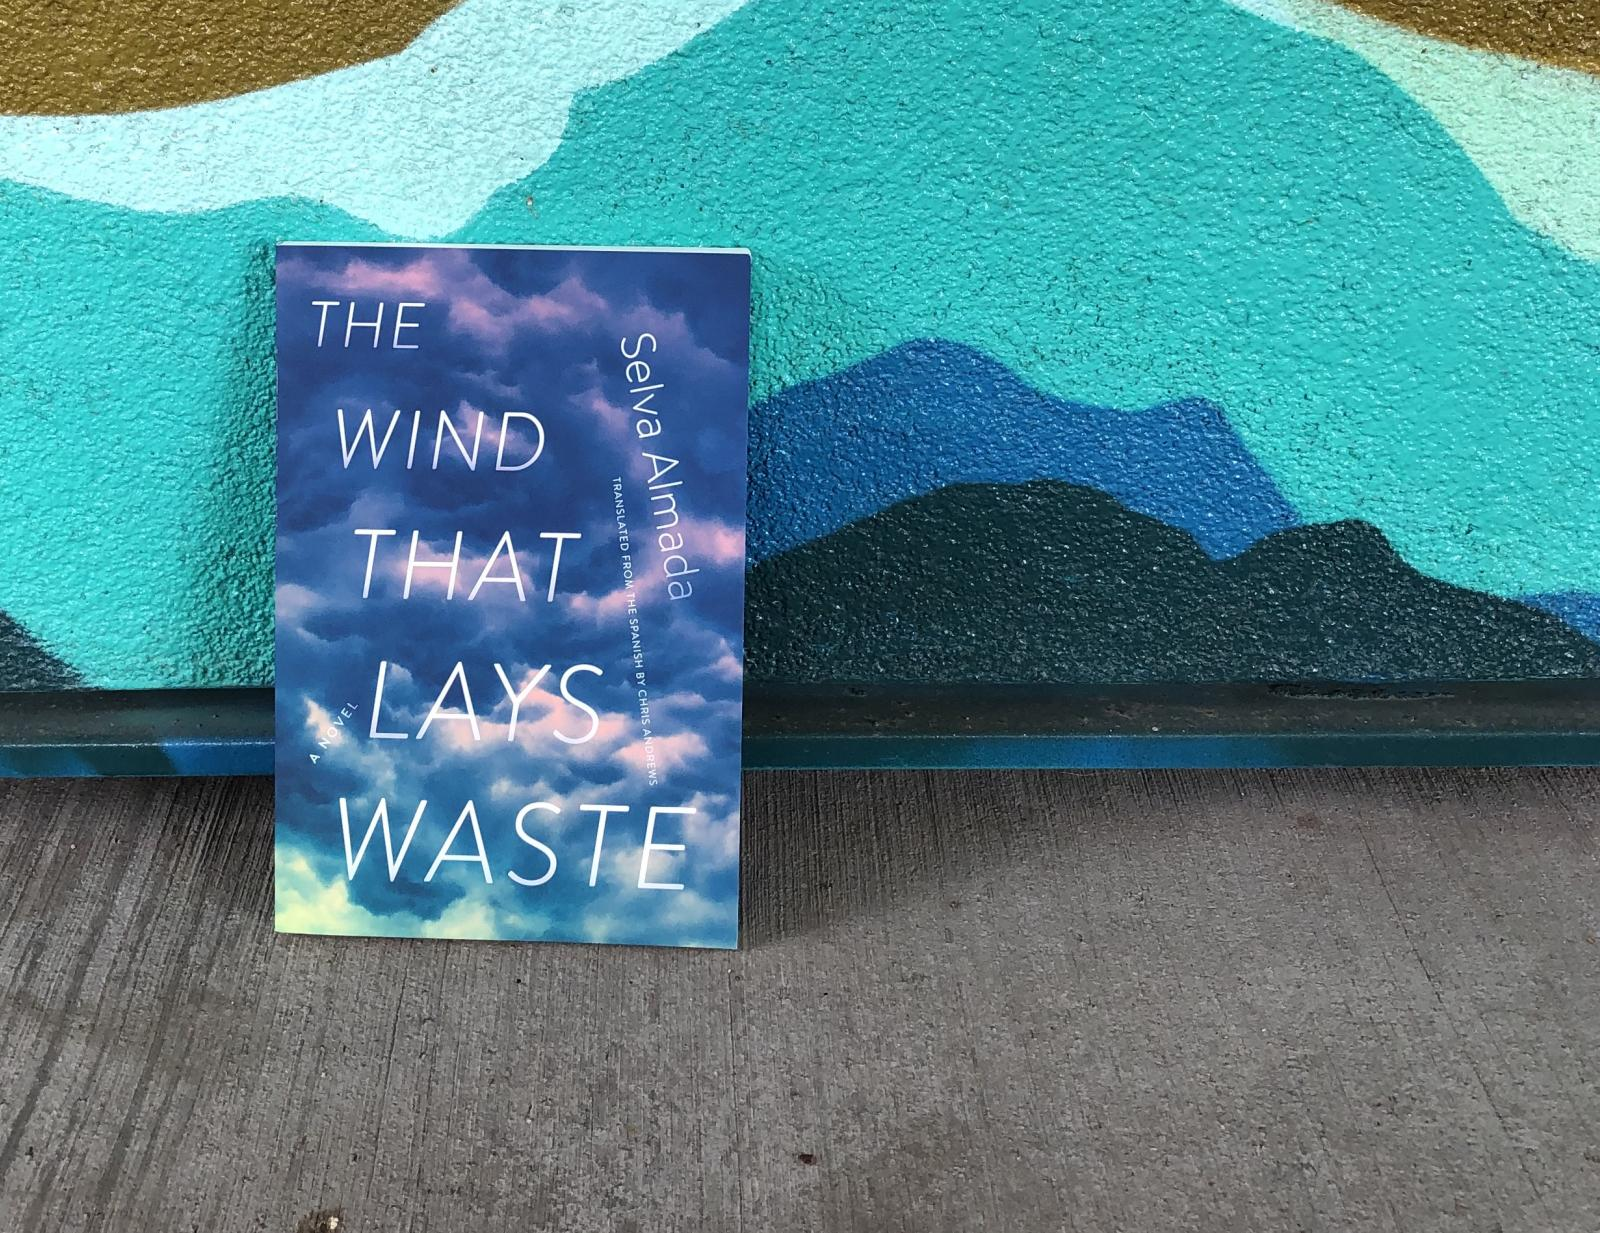 The Wind That Lays Waste blue mural